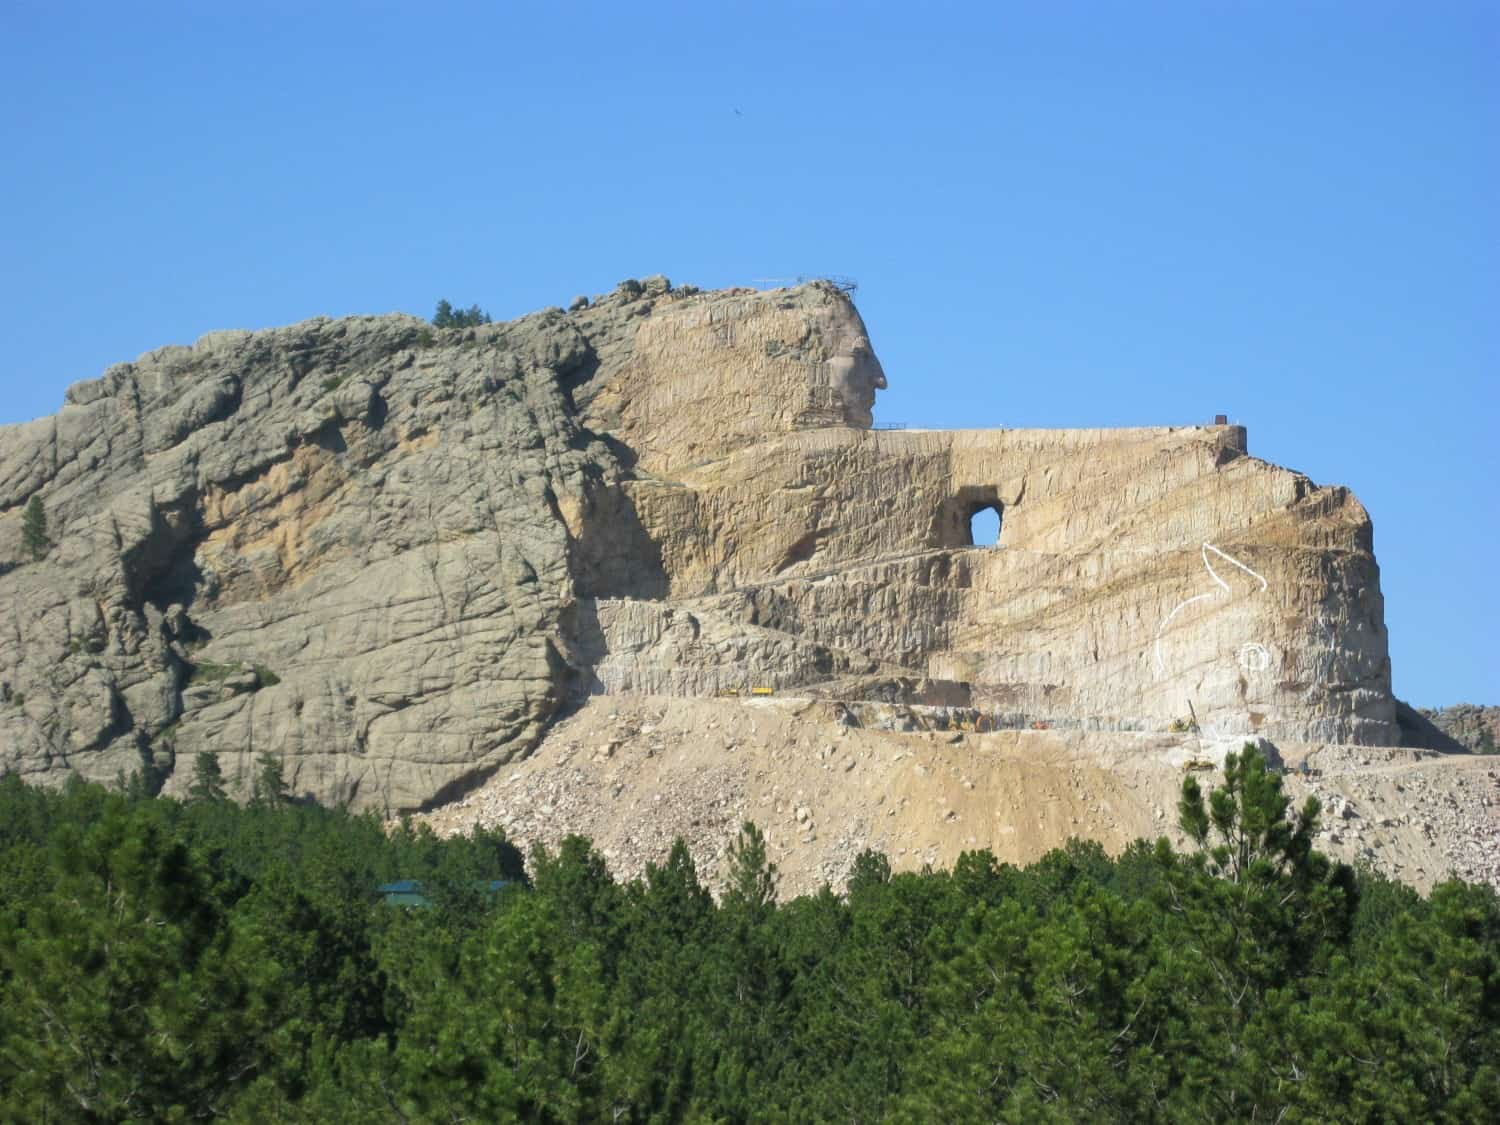 The Black Hills / Custer State Park